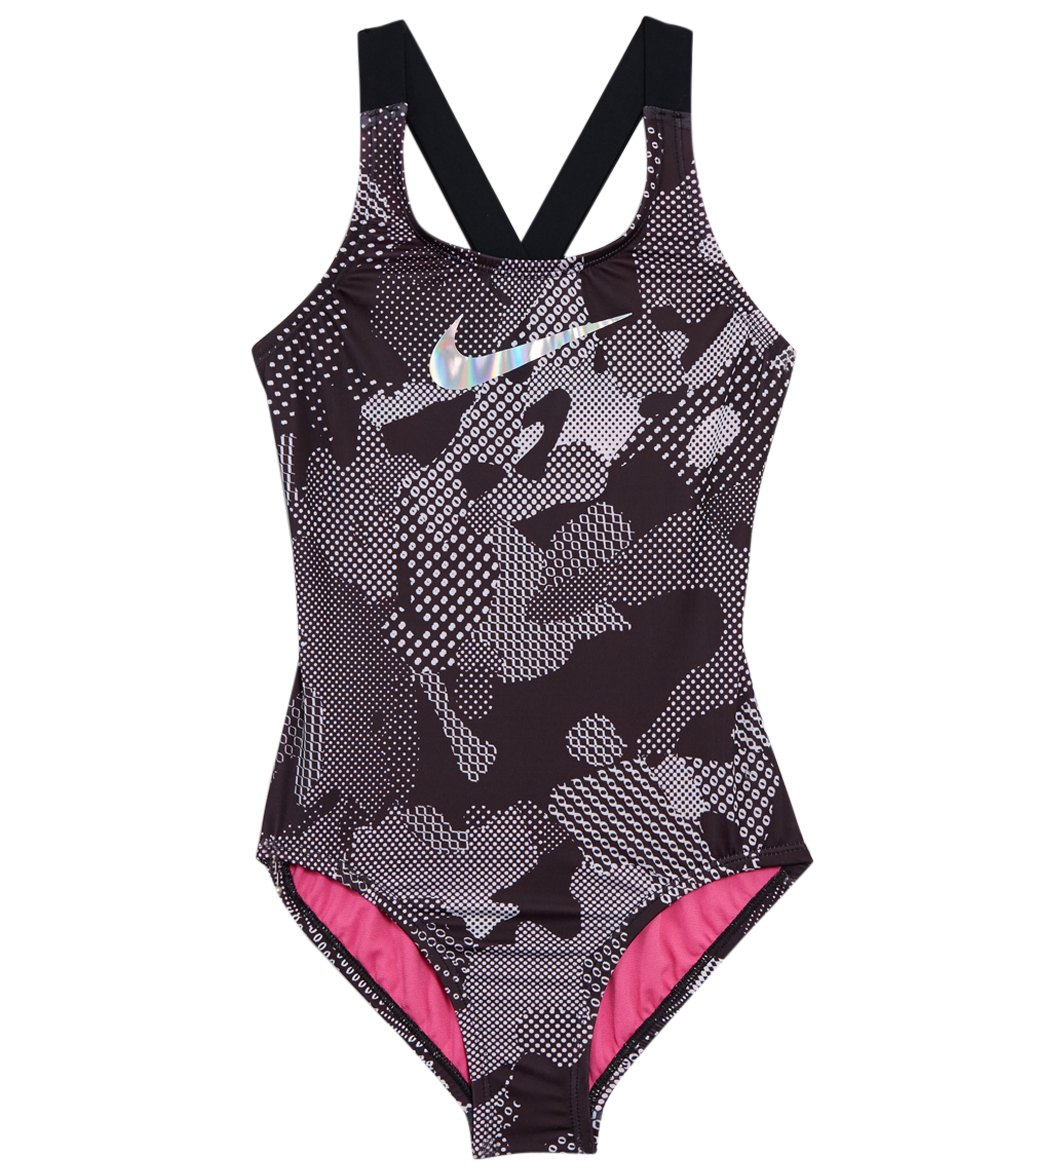 f1d4e428d Nike Girls' Optic Camo Crossback One Piece Swimsuit (Big Kid) at  SwimOutlet.com